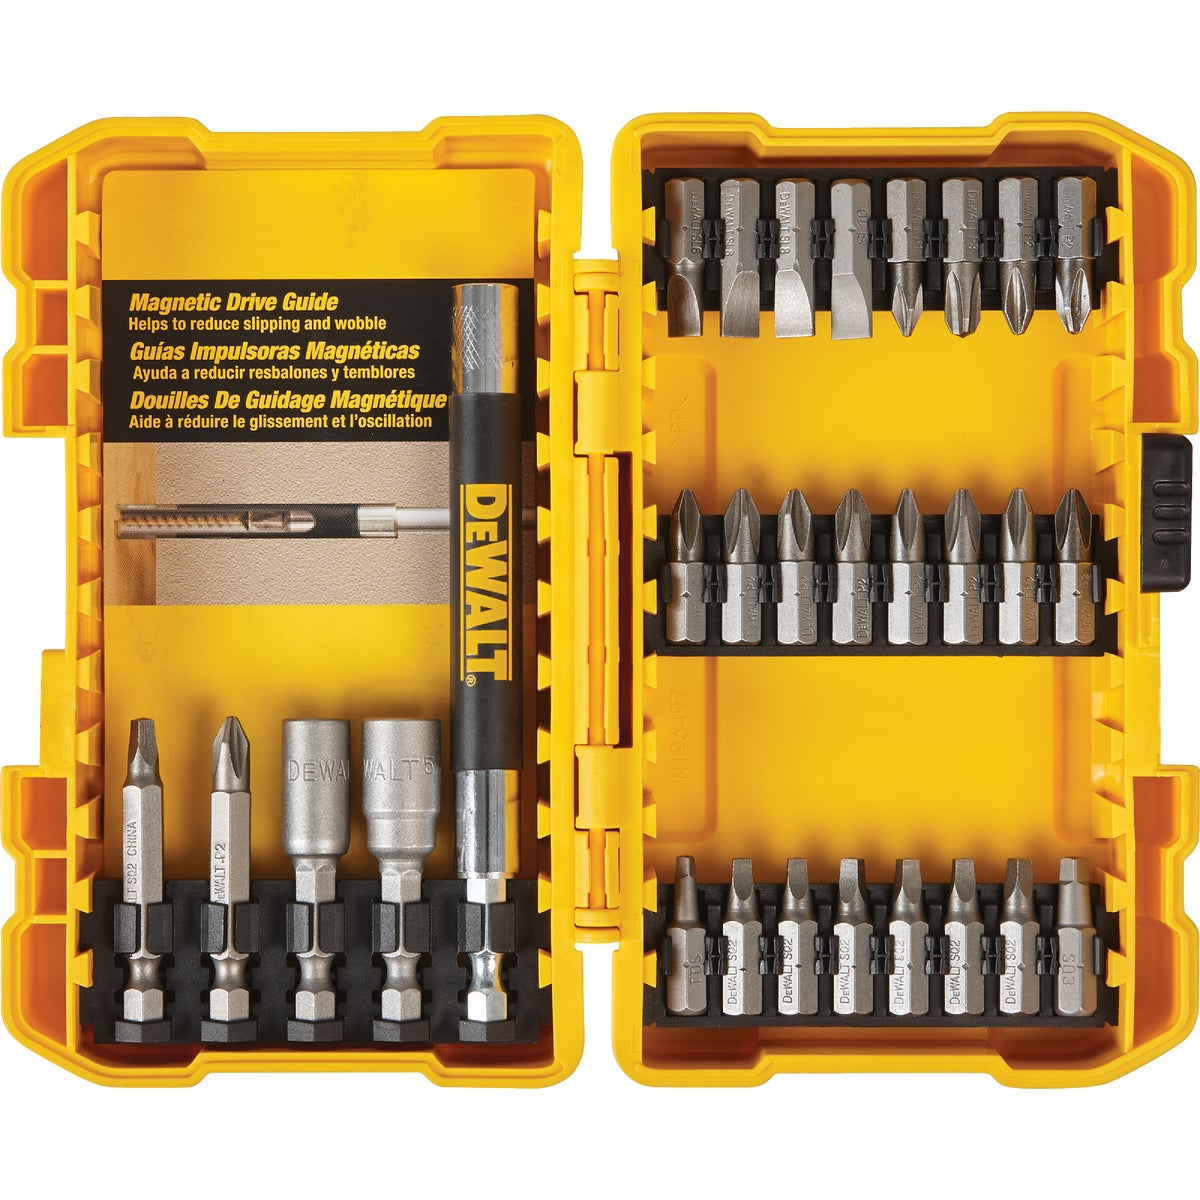 29PC SCREWDRIVR BIT SET - DW2162 by DeWalt